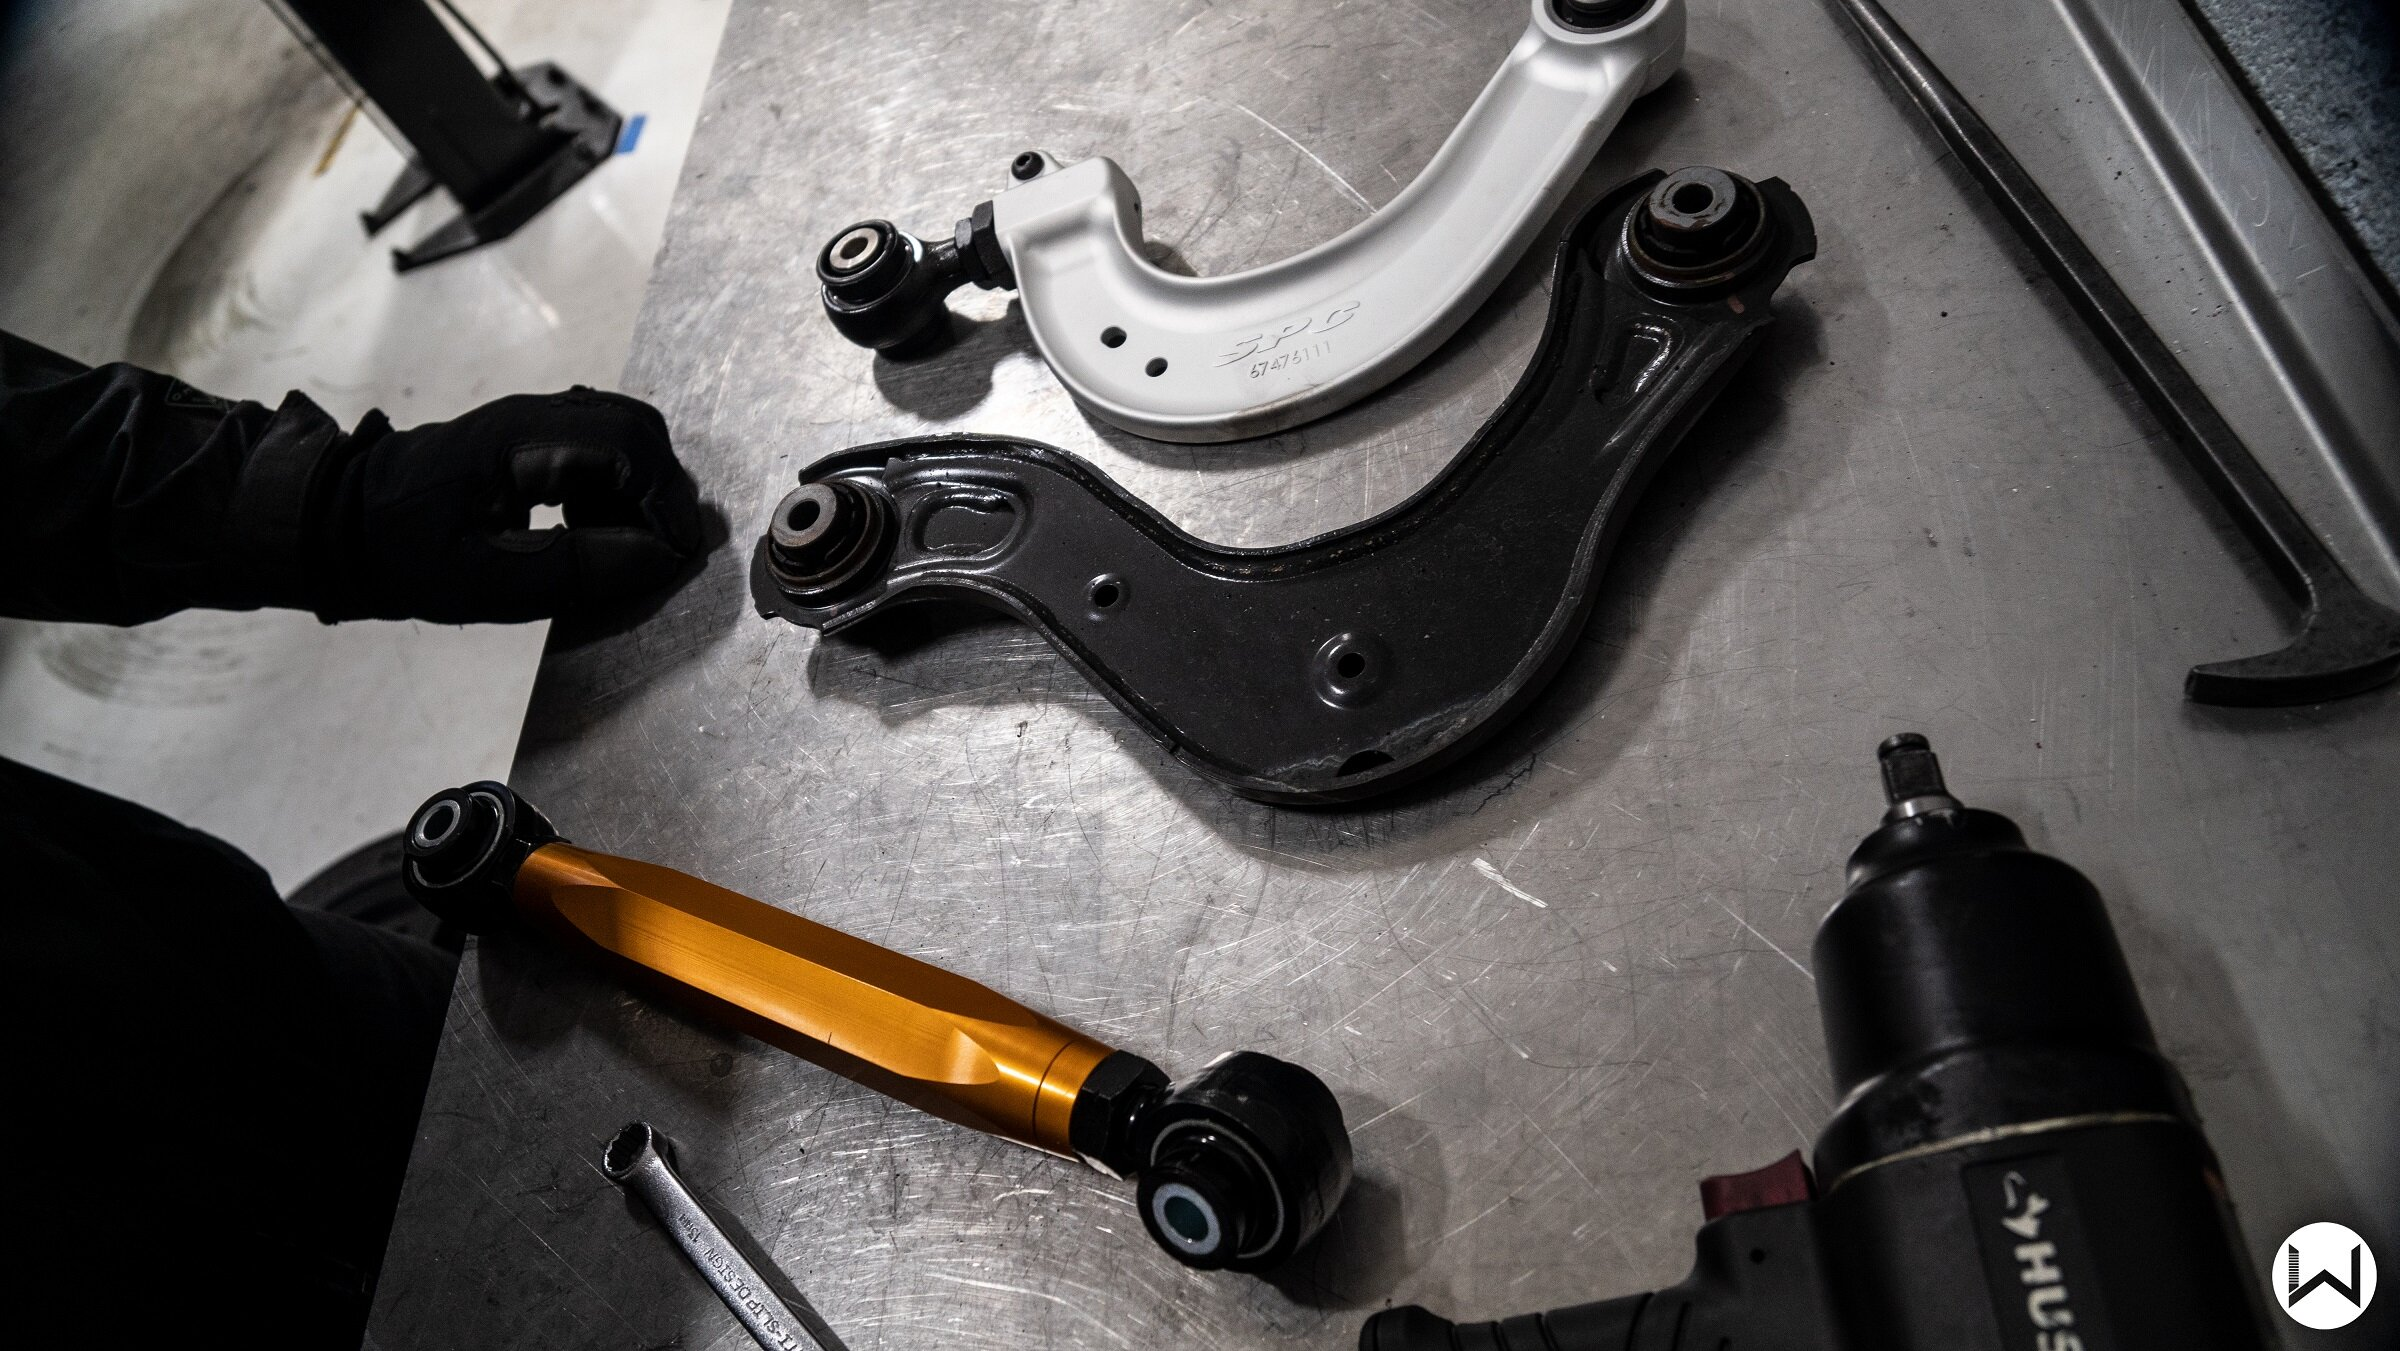 OEM Camber arm next to SPC Camber Arm